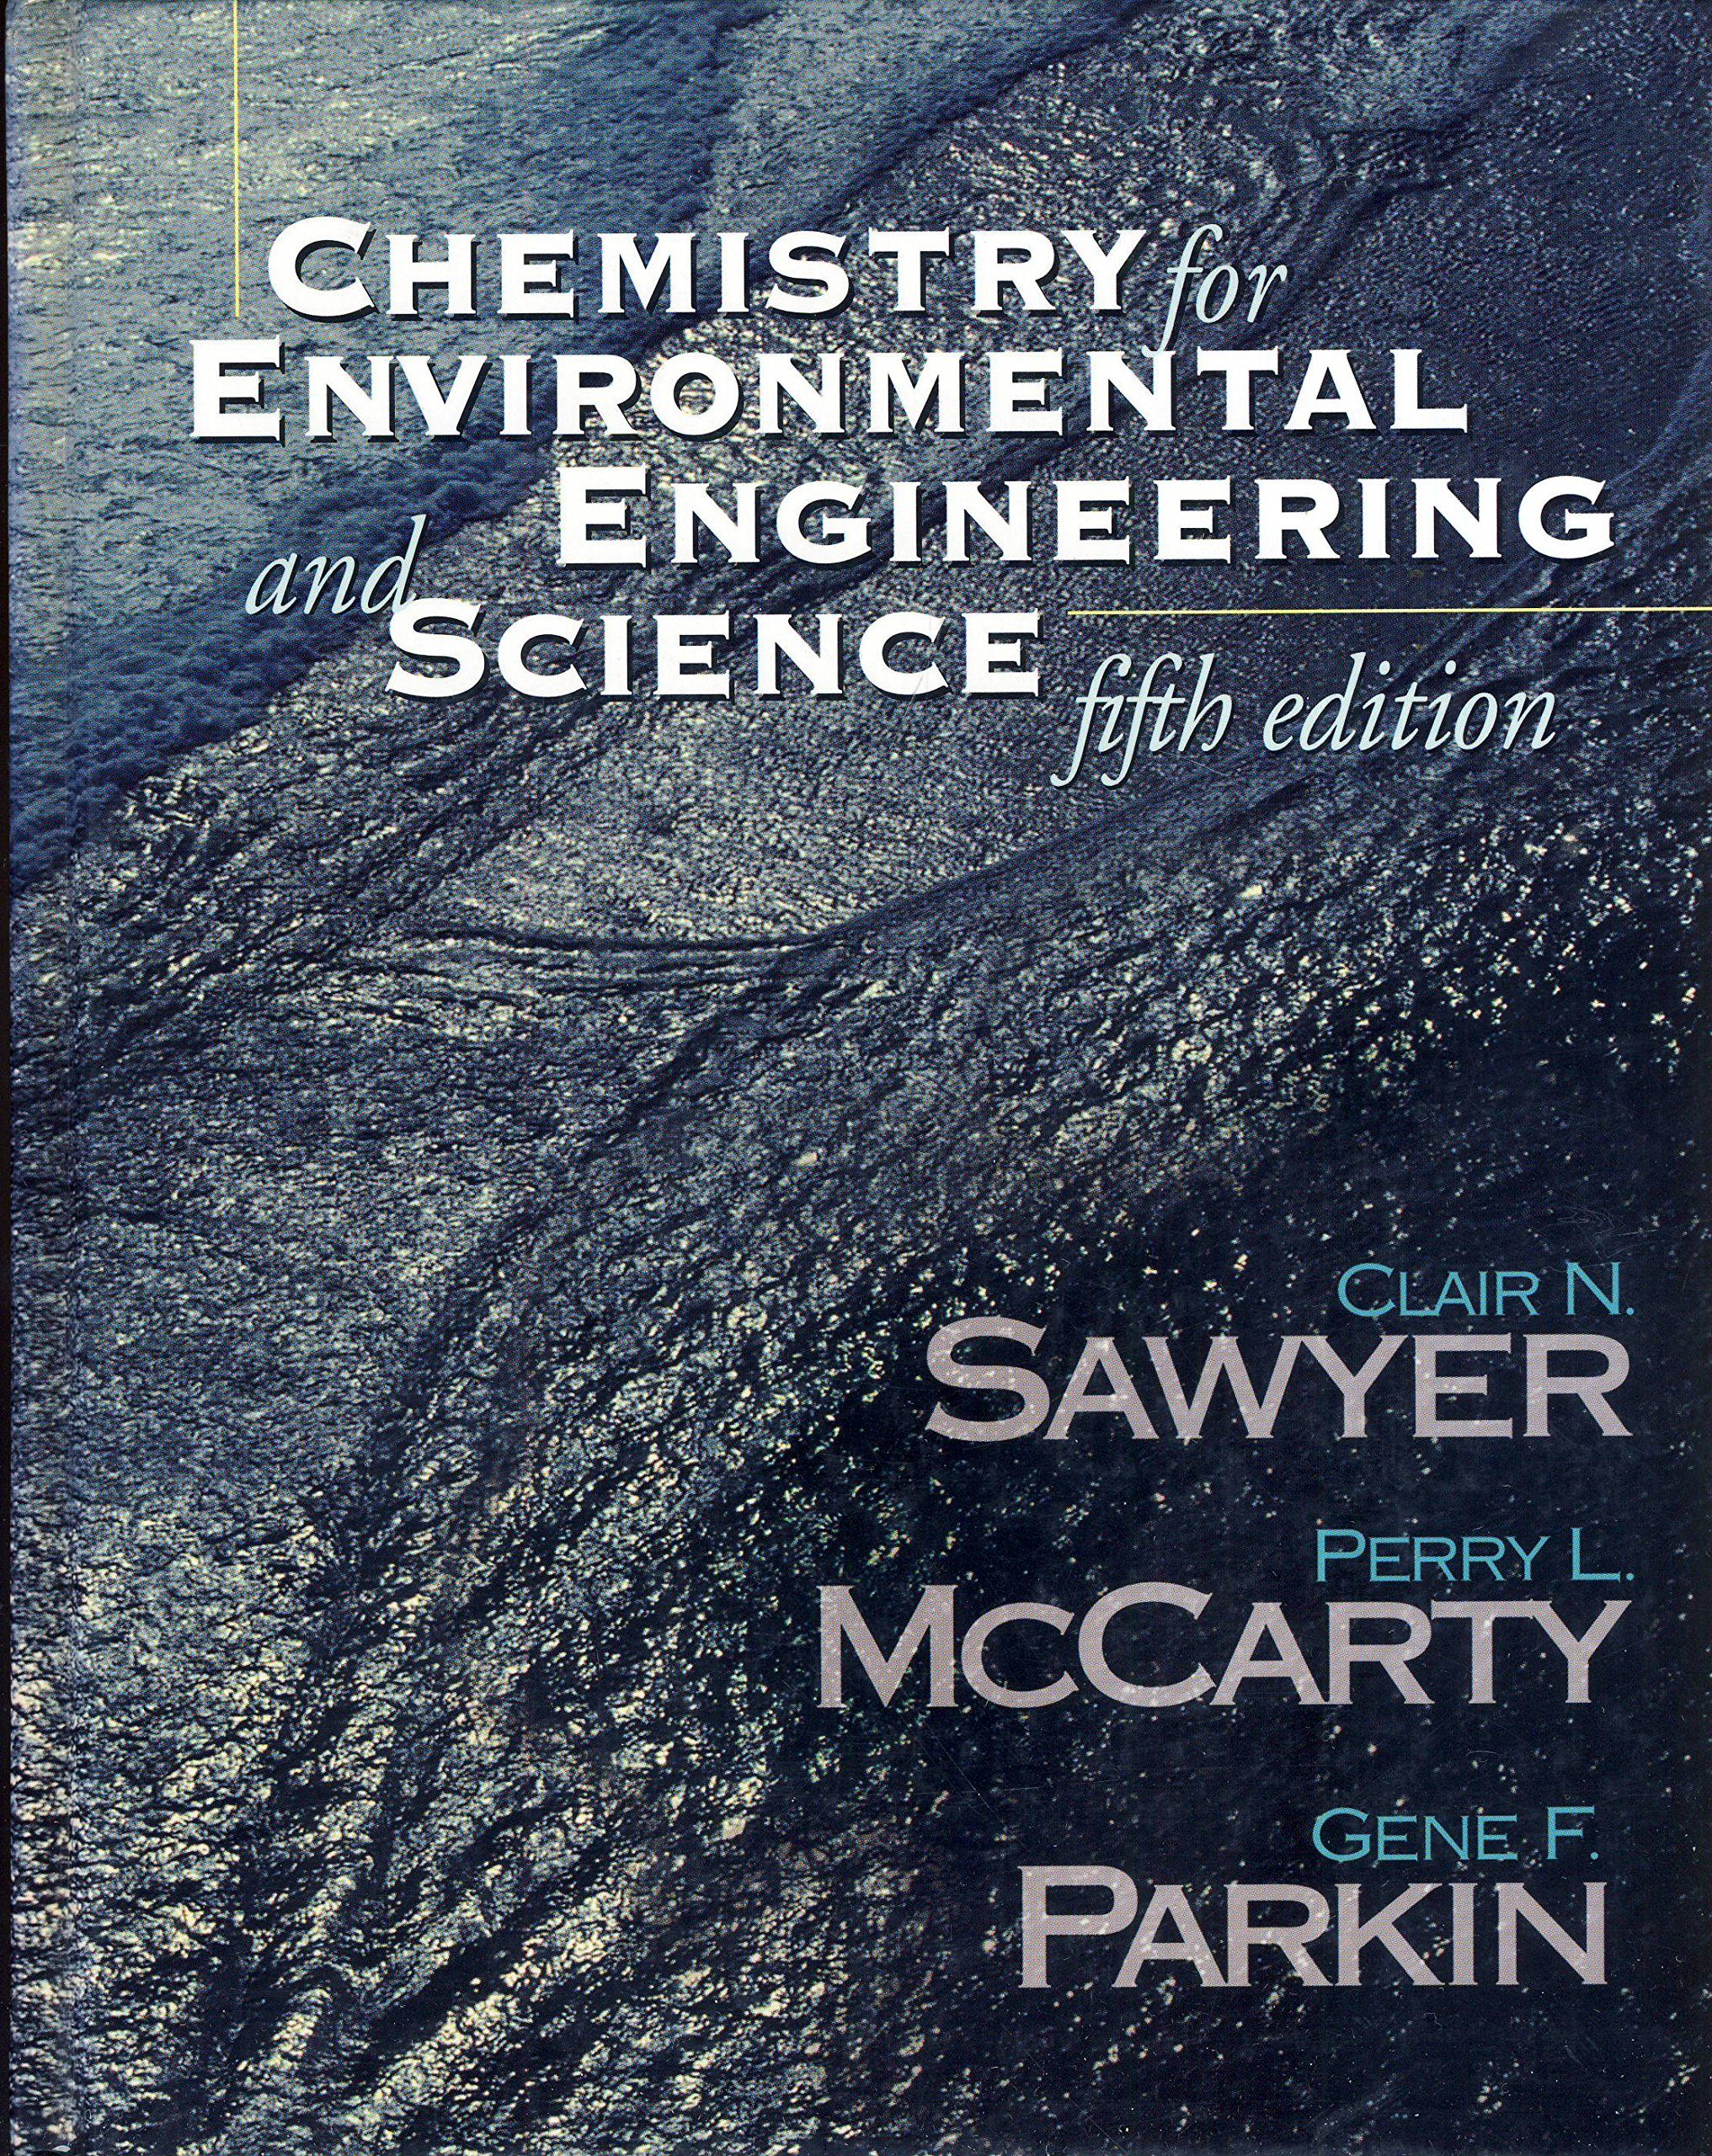 Chemistry for Environmental Engineering and Science: Clair N.; McCarty,  Perry L.; Parkin, Gene F. Sawyer: 9786600166124: Amazon.com: Books